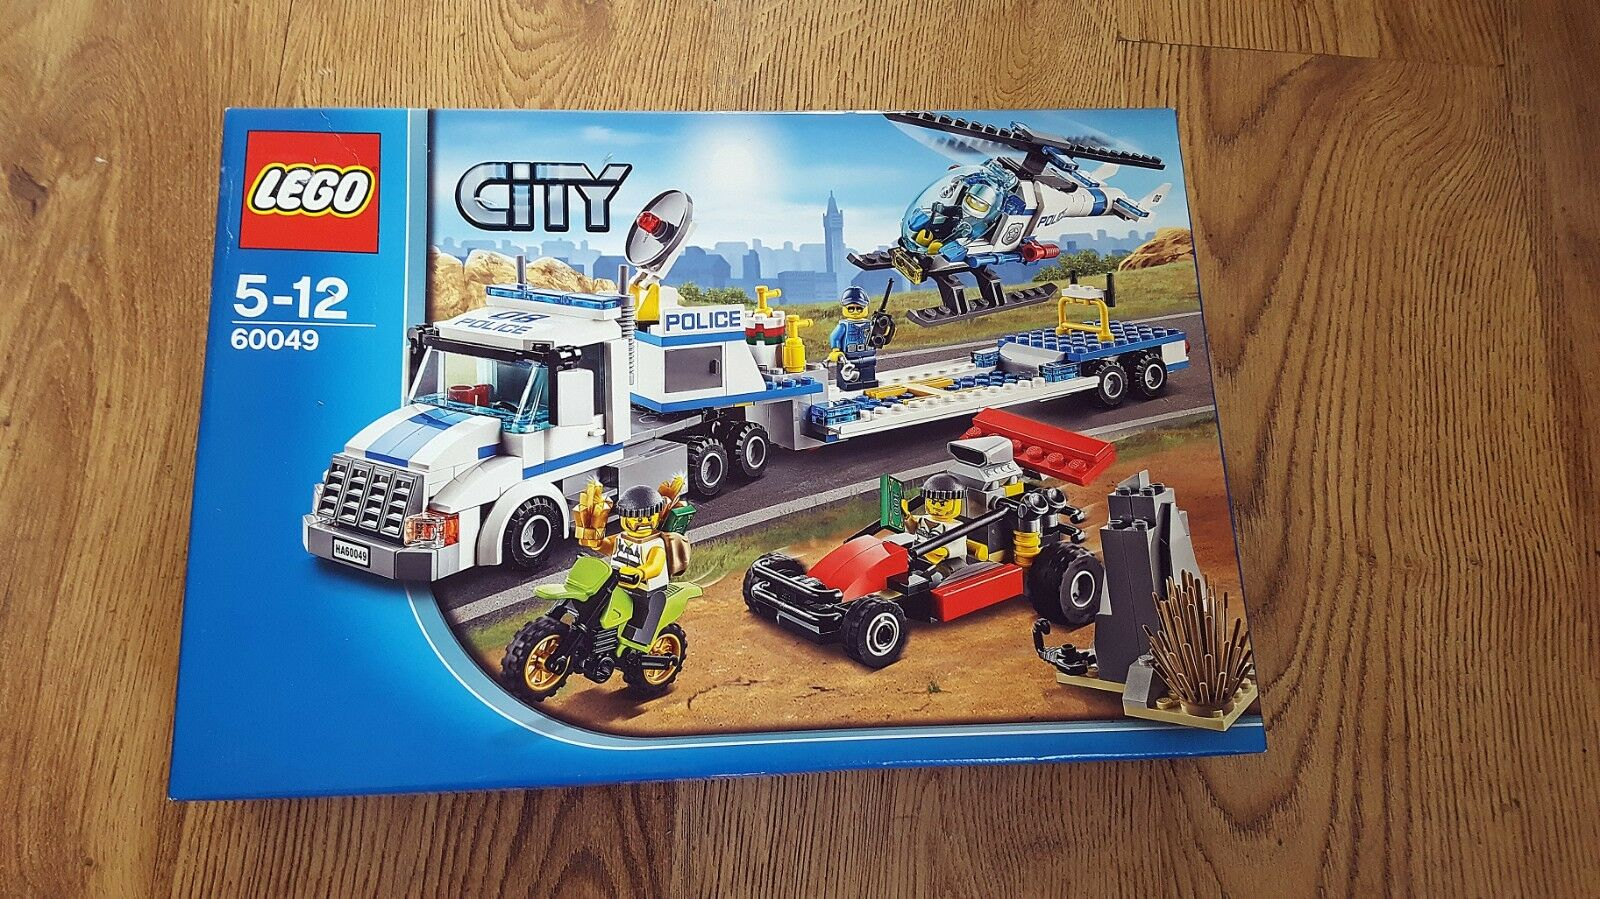 LEGO City 60049 Helicopter Transporter (2014) | New, Unopened & Great Condition